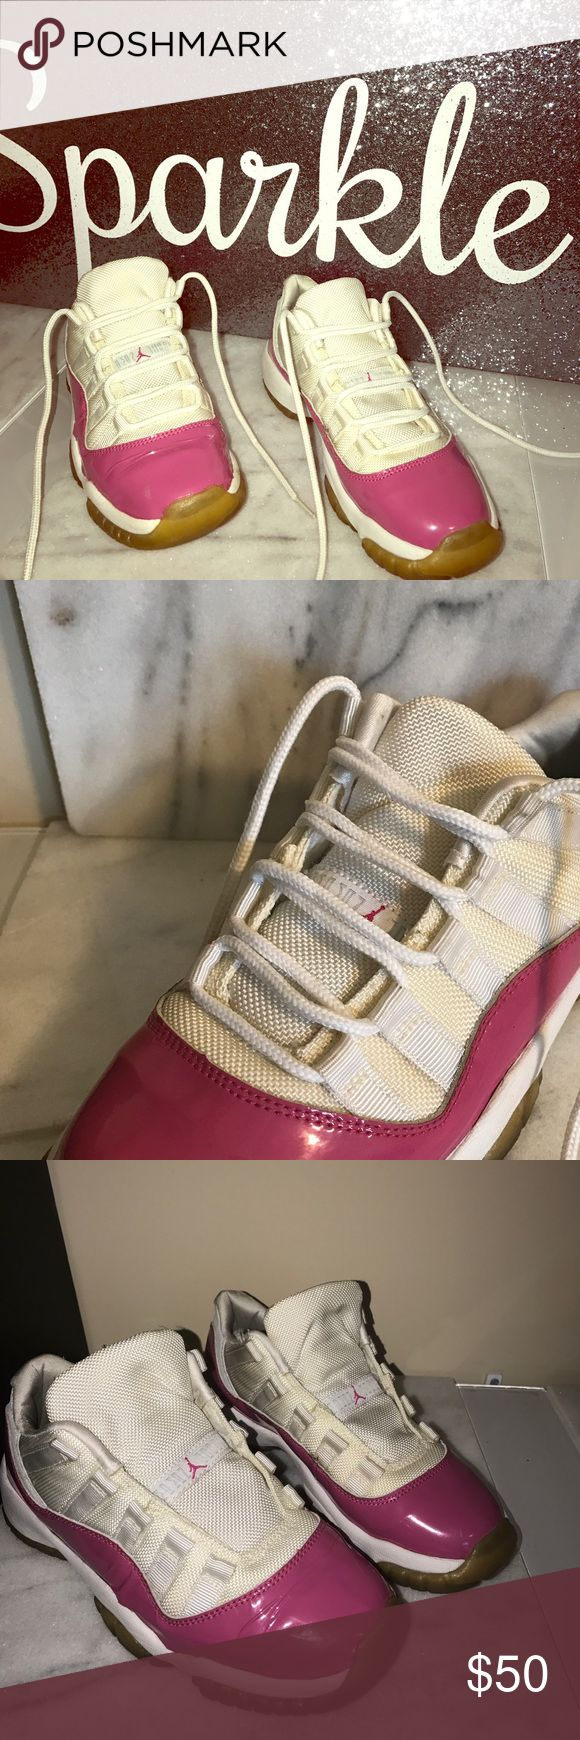 Jordan 11 Hot Pink Authentic For the shoe RESTORERS. Shoe released in 2001. Skin is lifting but in tact. Light scuffs from gentle wear and tear. You can't expect to just put these on your kid and let them play in them. The glue is too old for that. Original laces fully intact. Great for a retro photo shoot or staging prop. Air Jordan Shoes Sneakers